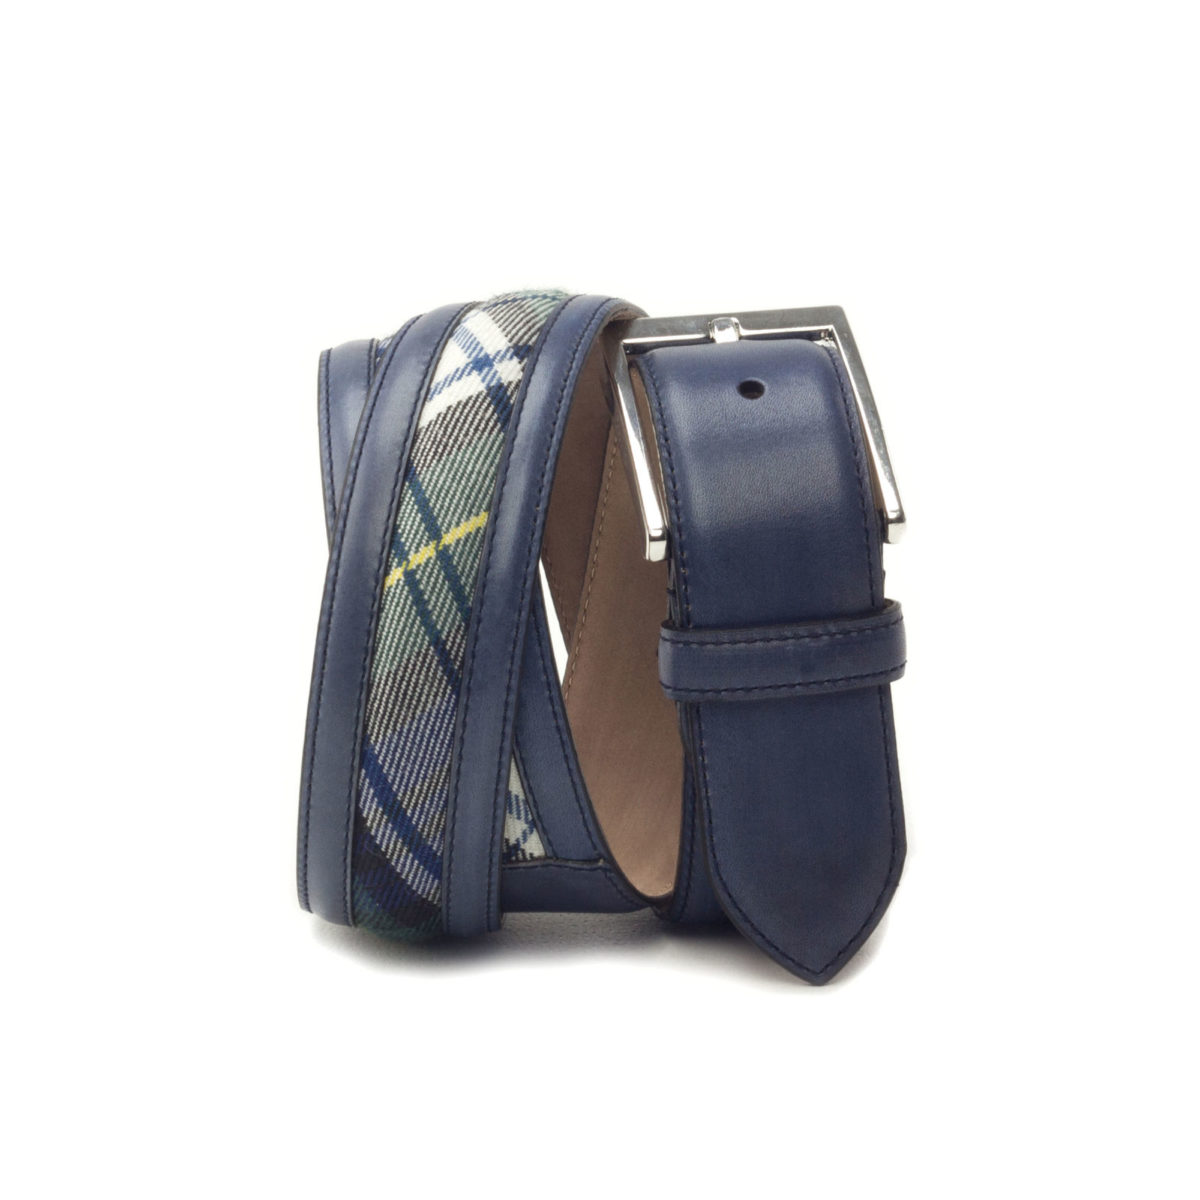 Side view of model Lombard, navy blue painted calf, tartan fabric, stone nubuck, niqel buckle Golf BespokeShoes